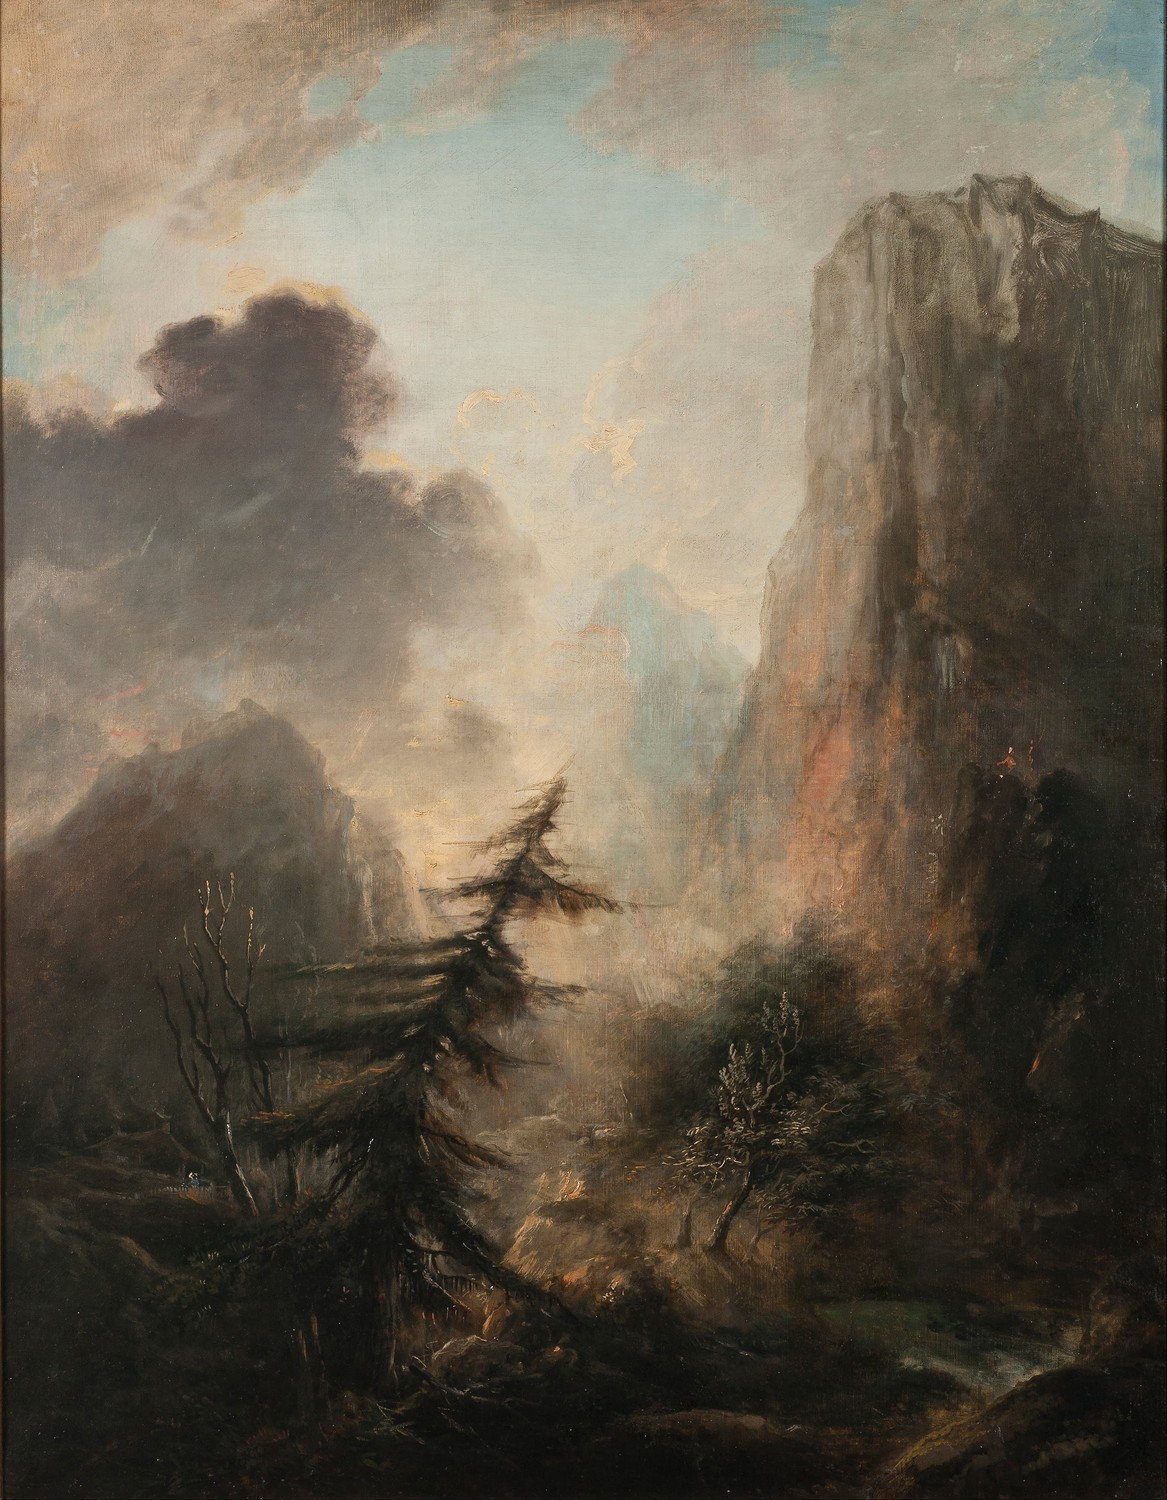 Unframed Canvas Prints - Romantic Landscape With Spruce - Elias Martin(China (Mainland))